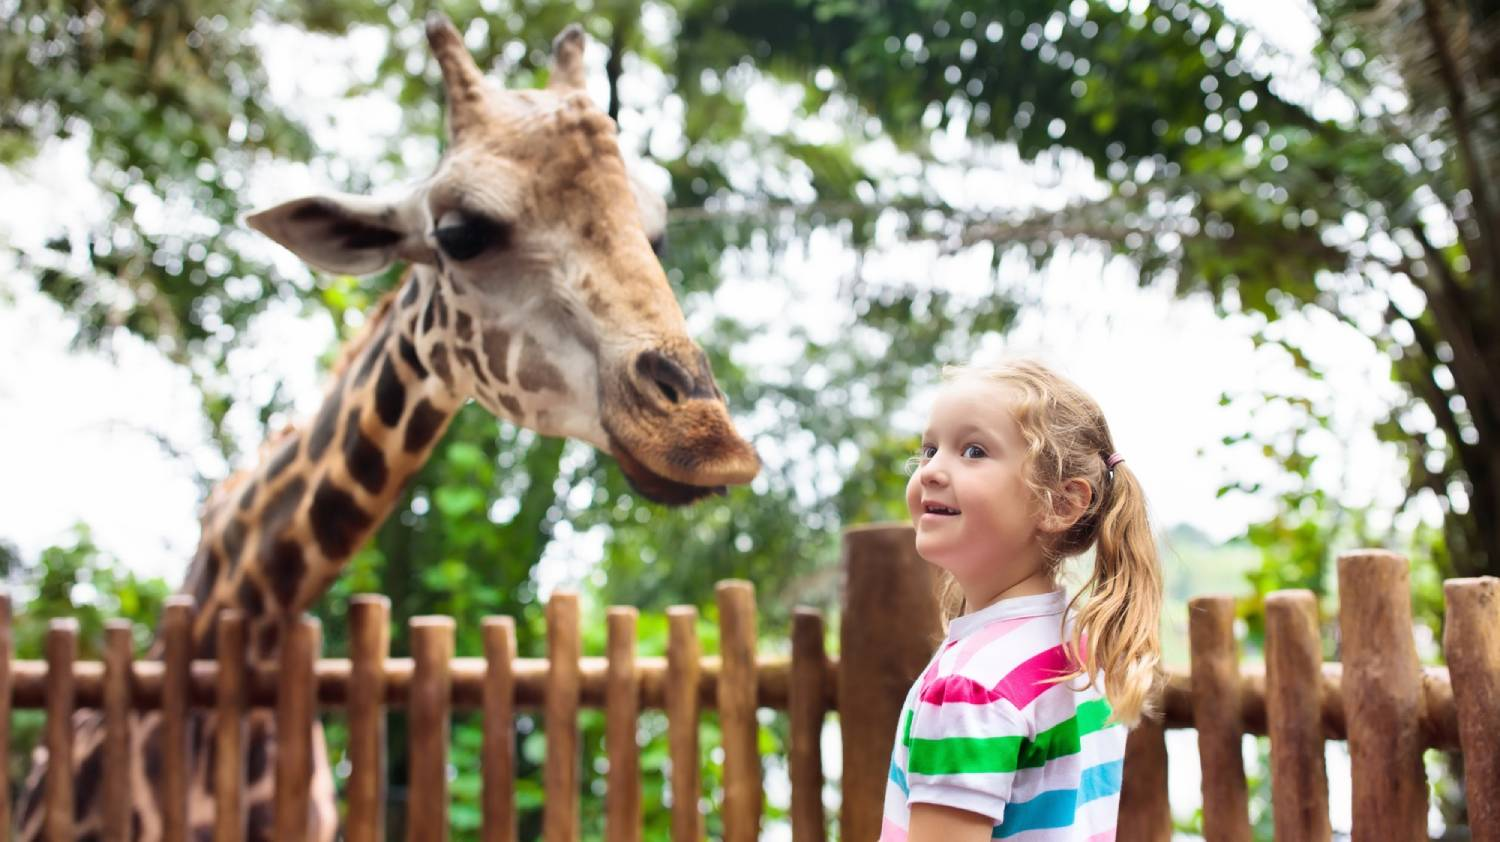 Singapore Zoo Breakfast - Things To Do In Singapore